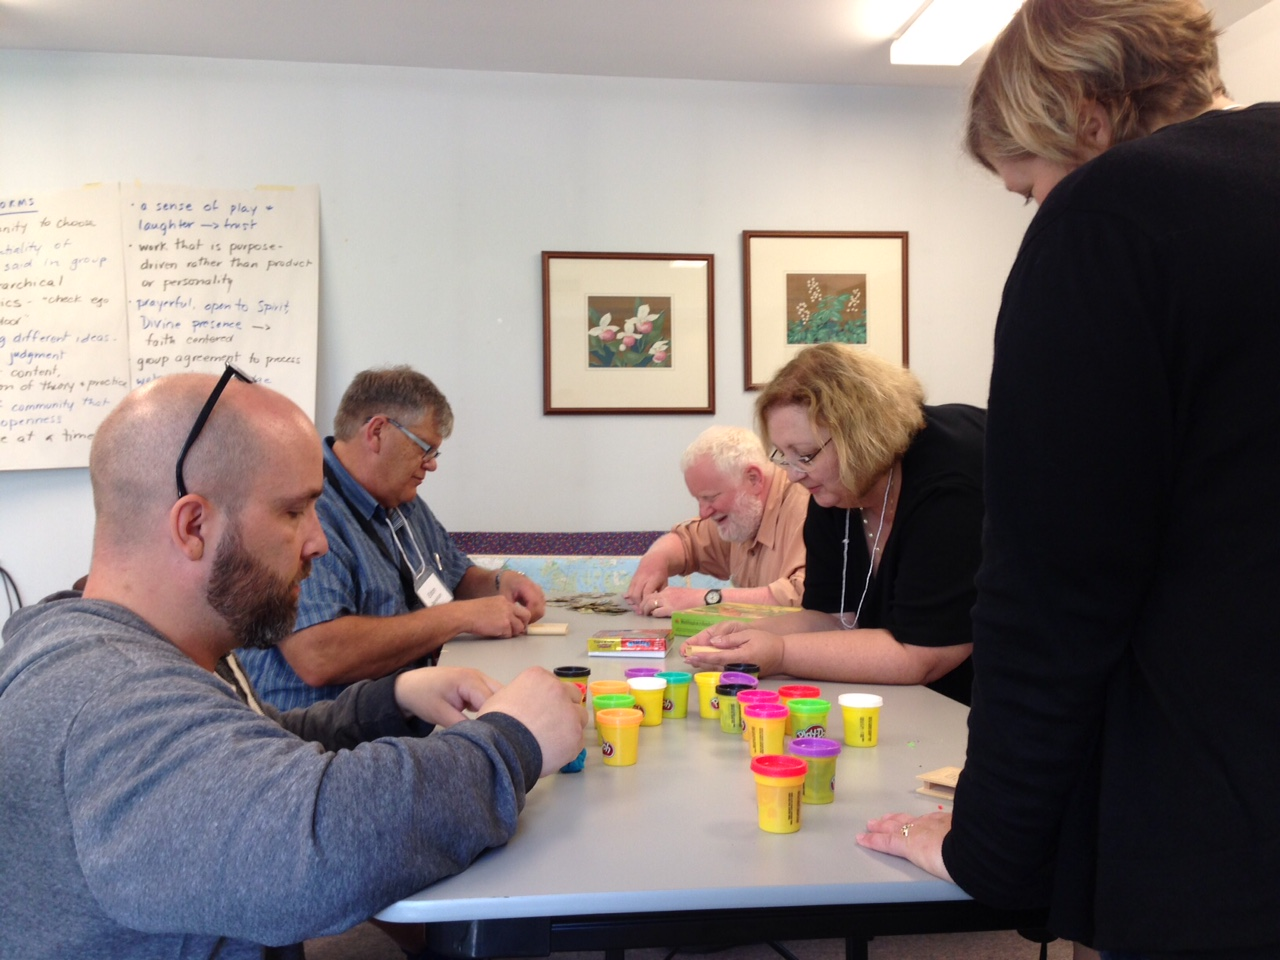 LDM participants engaging playdough and puzzles